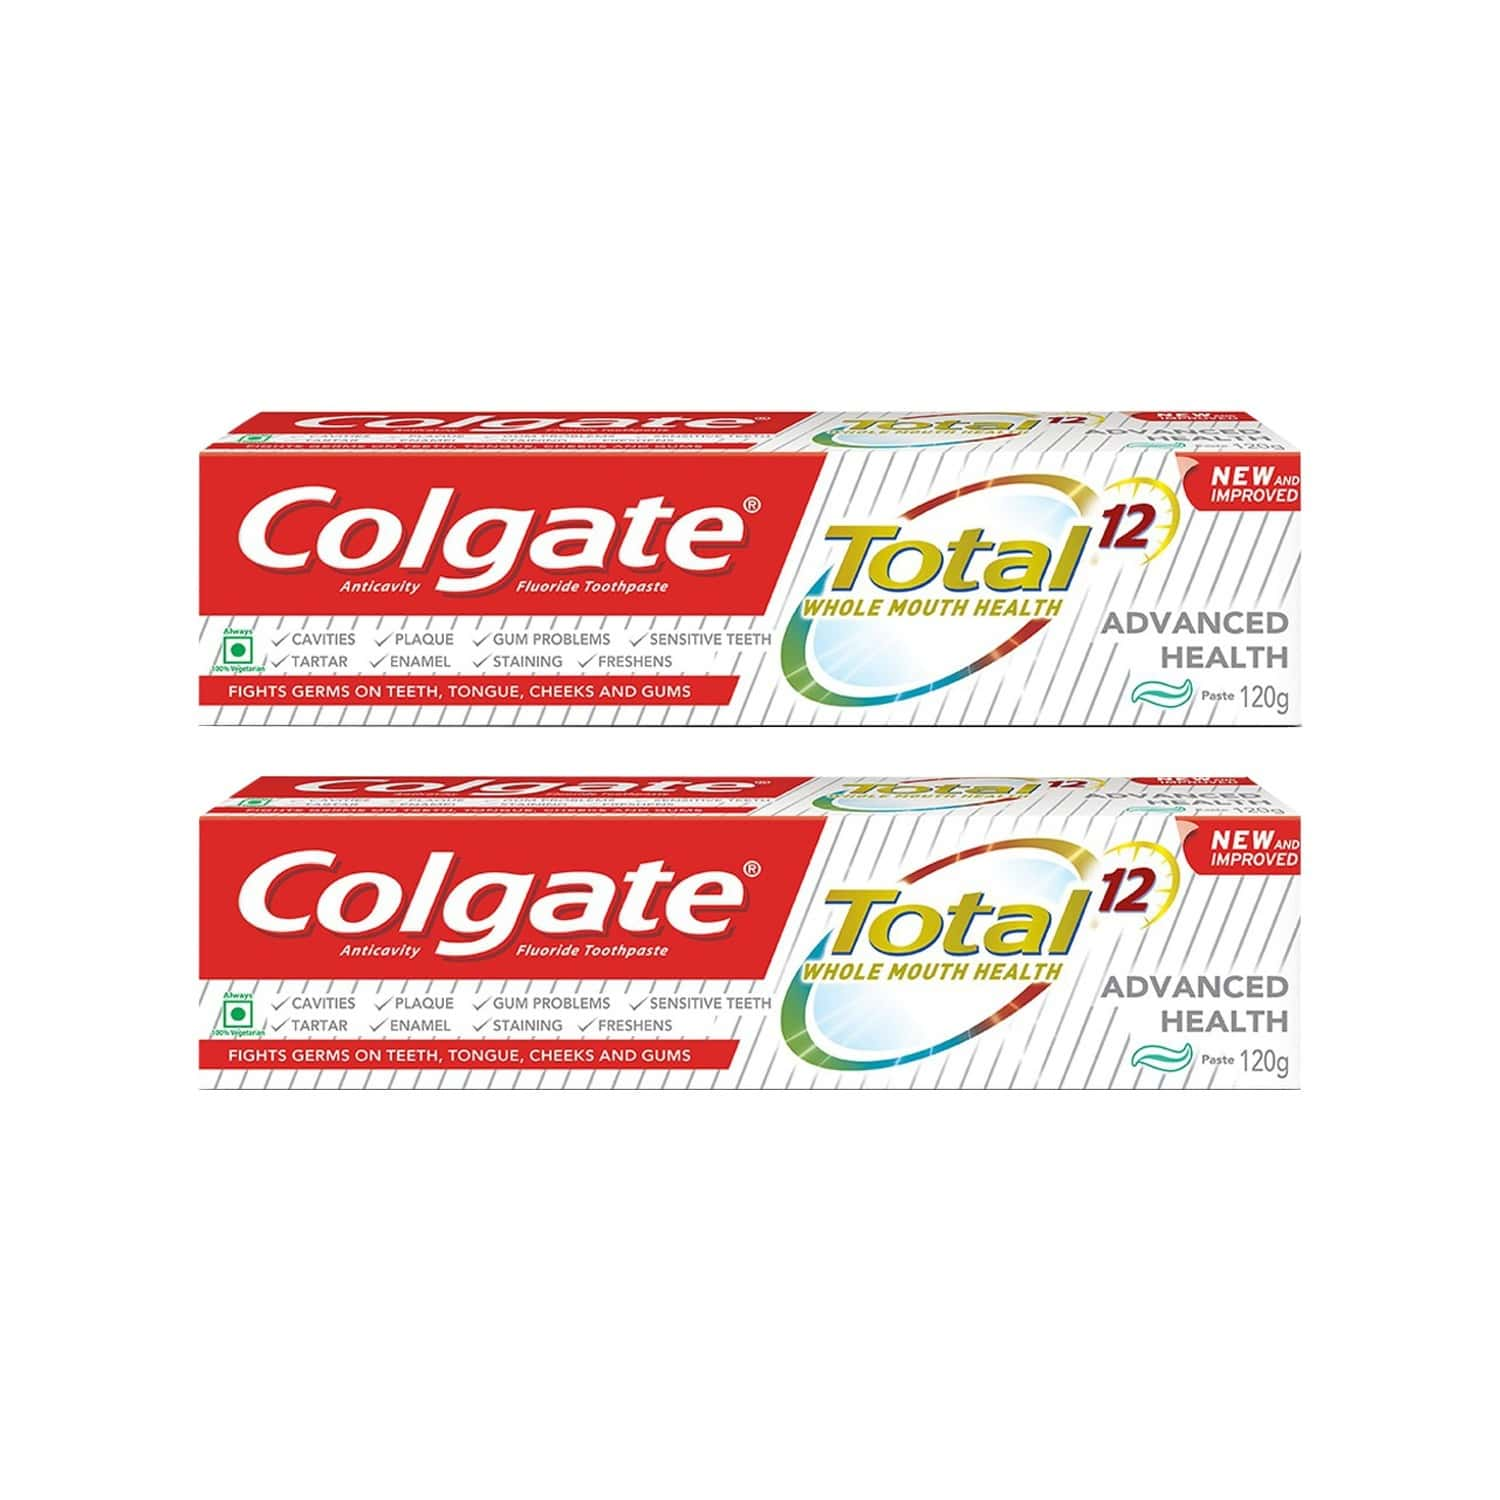 Colgate Total Advanced Health Anticavity Toothpaste - 120g (pack Of 2)